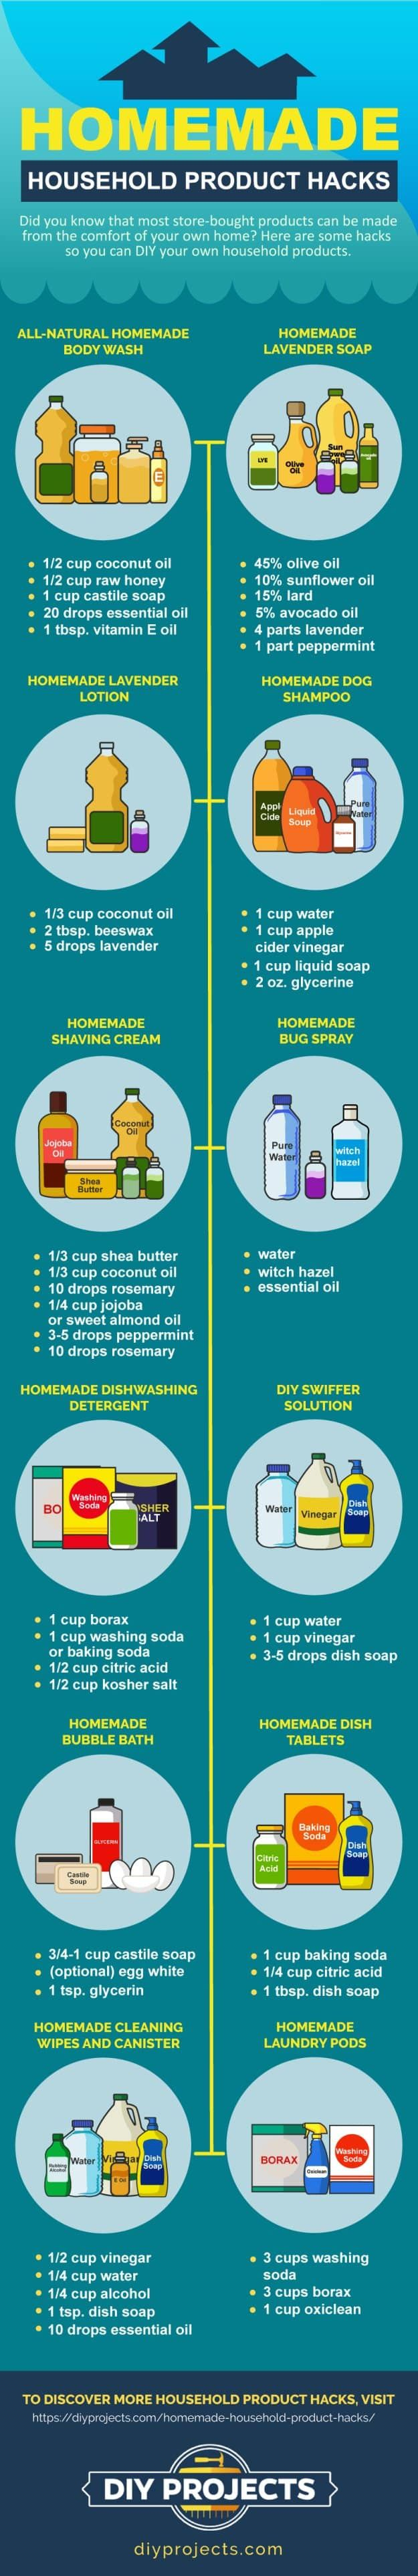 Go ahead and save your pocket from buying those expensive household products. You'll definitely eliminate a bunch of unwanted chemicals from your daily life with these homemade household product hacks. The best part is, you will learn to make everyday items like shaving cream, mouthwash, lip scrub, laundry detergent, makeup brush cleaner, and even insecticide.